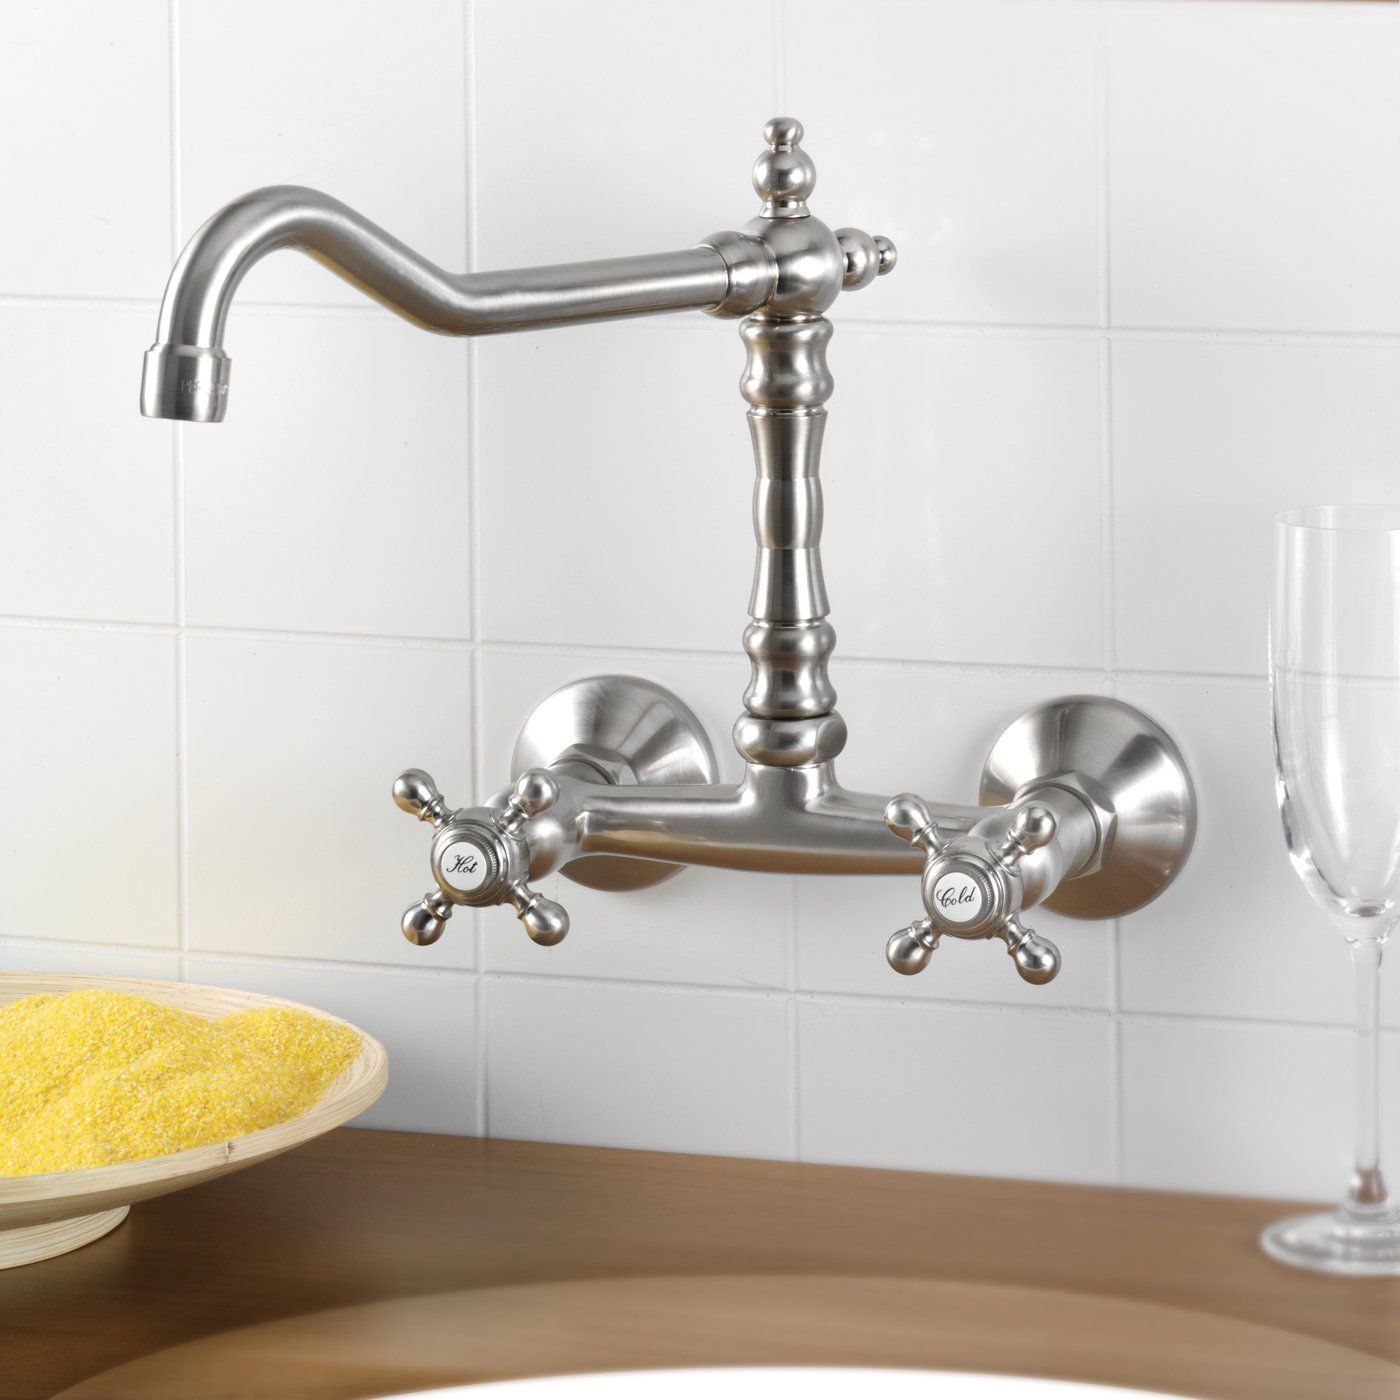 Mico Designs Ltd. 7757-C Victorian Wall Mounted Kitchen Faucet | ATG ...